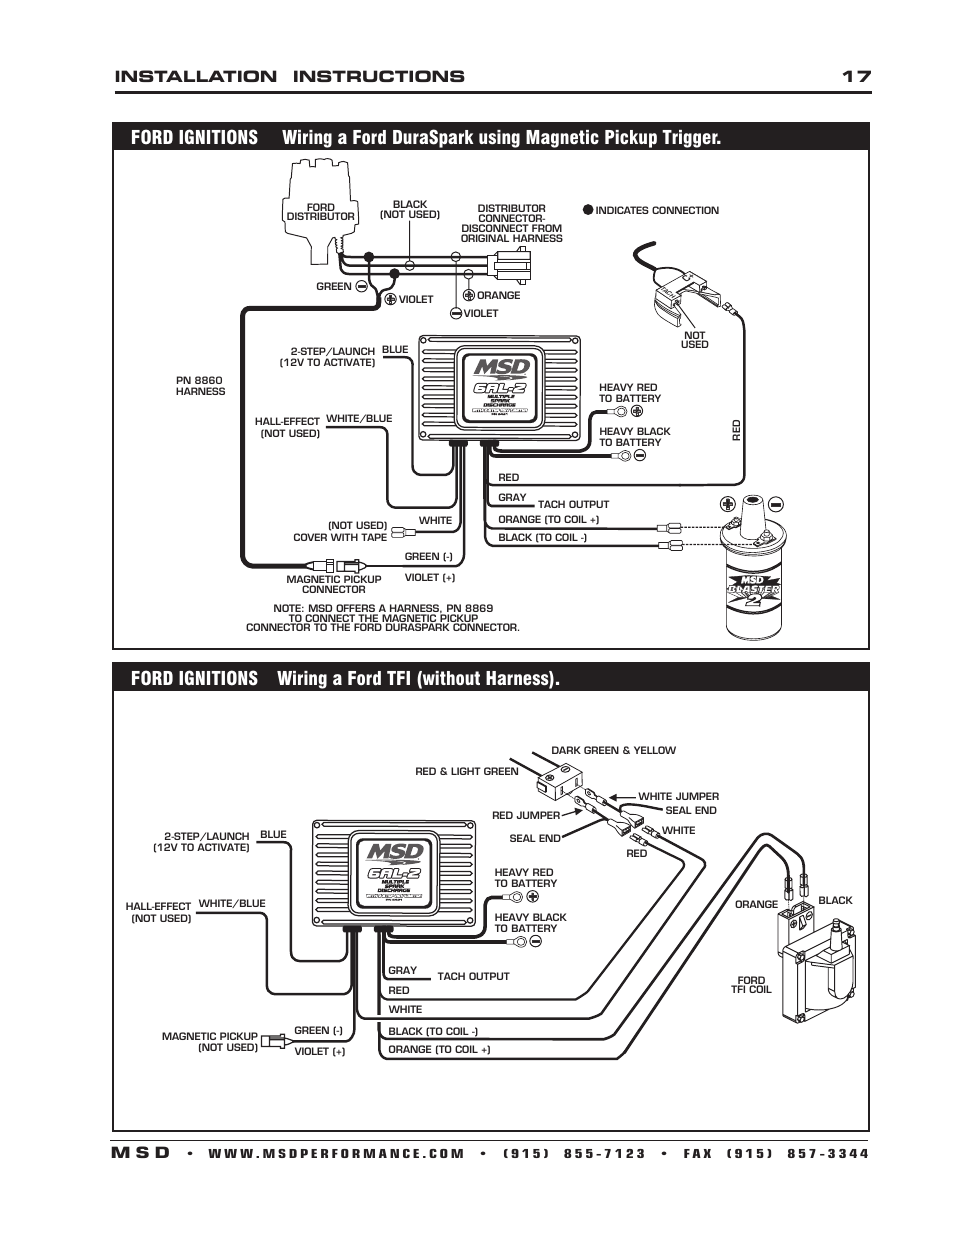 msd 6421 wiring diagram msd 3 step wiring